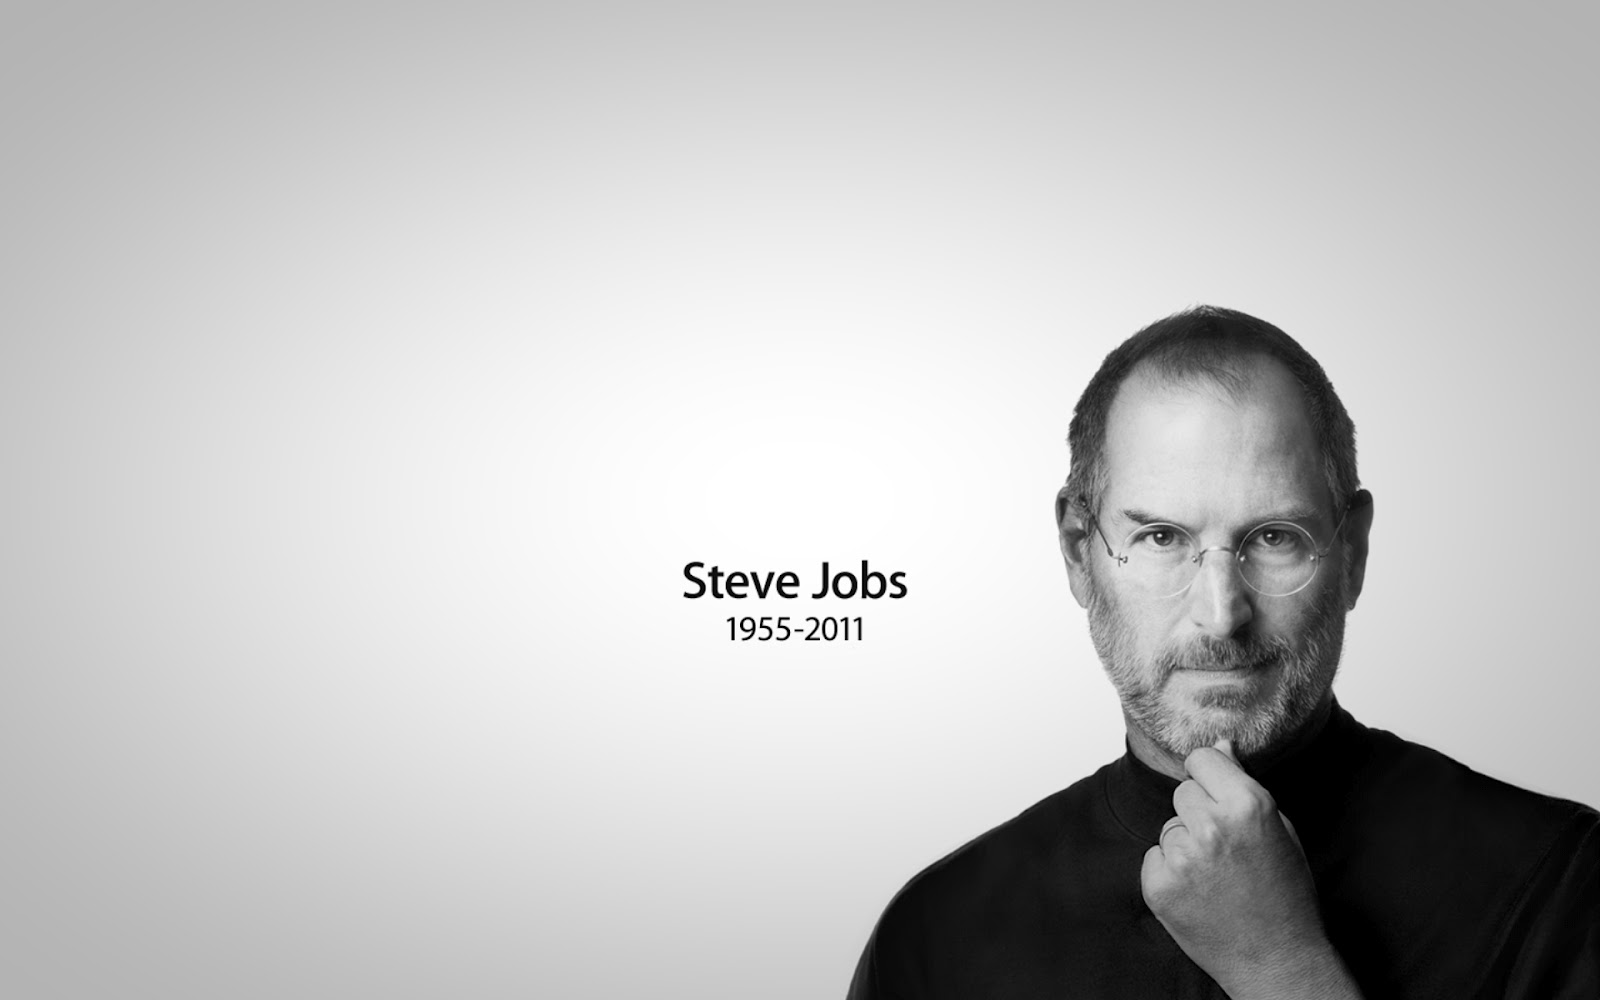 tribute to steve jobs wallpapers - 17 Tribute To Steve Jobs Wallpapers In Hd 1dut (17